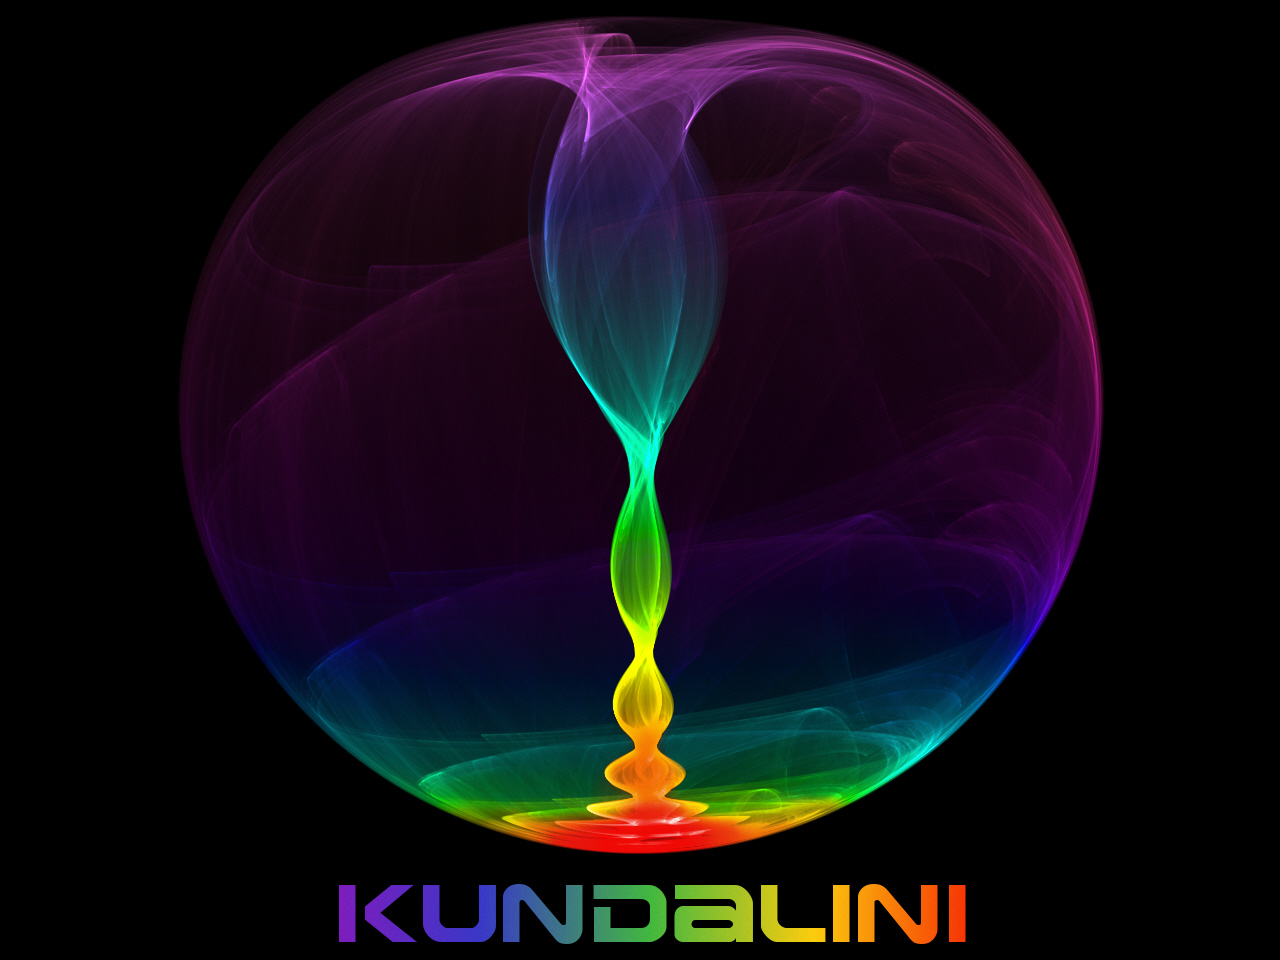 Kundalini Dream: Queen of Sheba